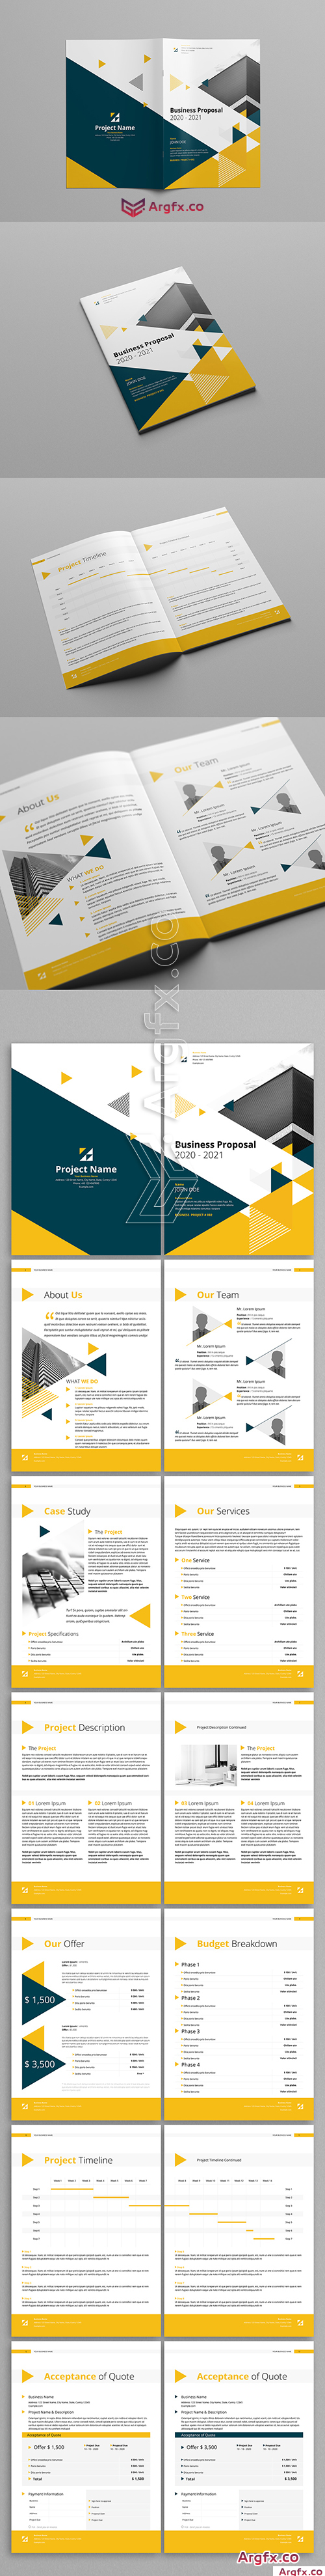 Yellow And Gray Booklet Layout 205399121